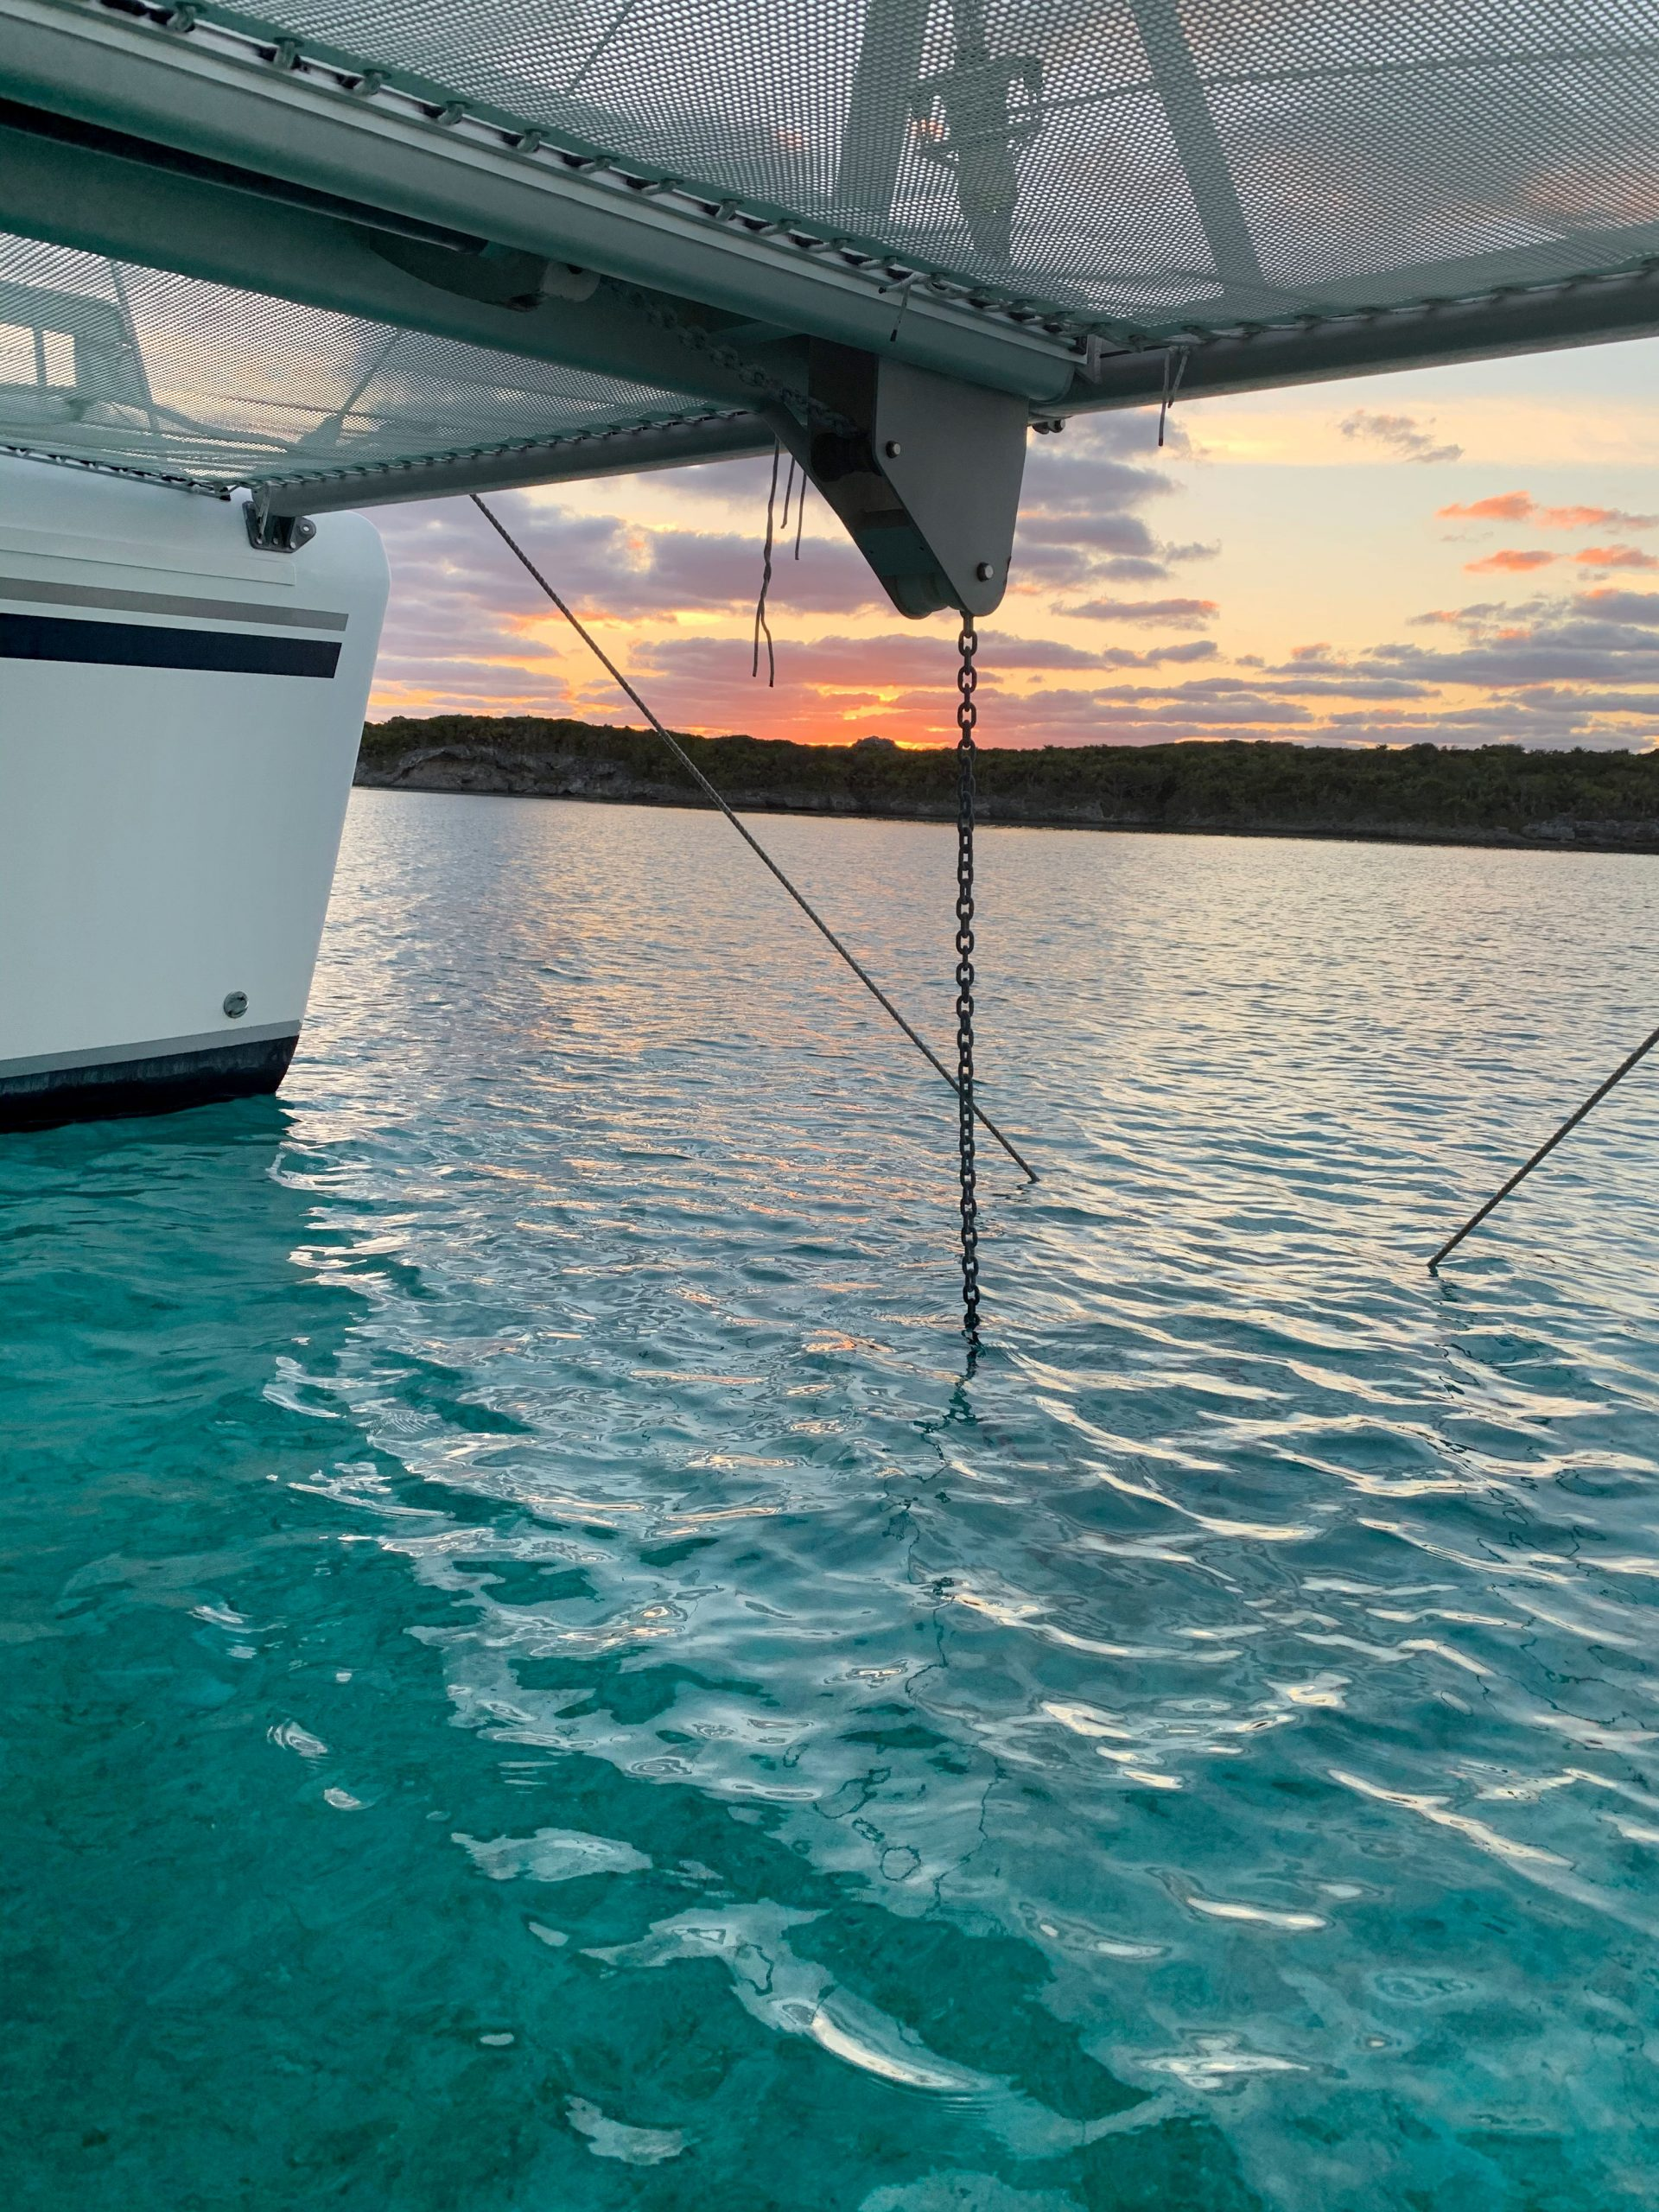 Sunset viewed from beneath the trampolines on a catamaran